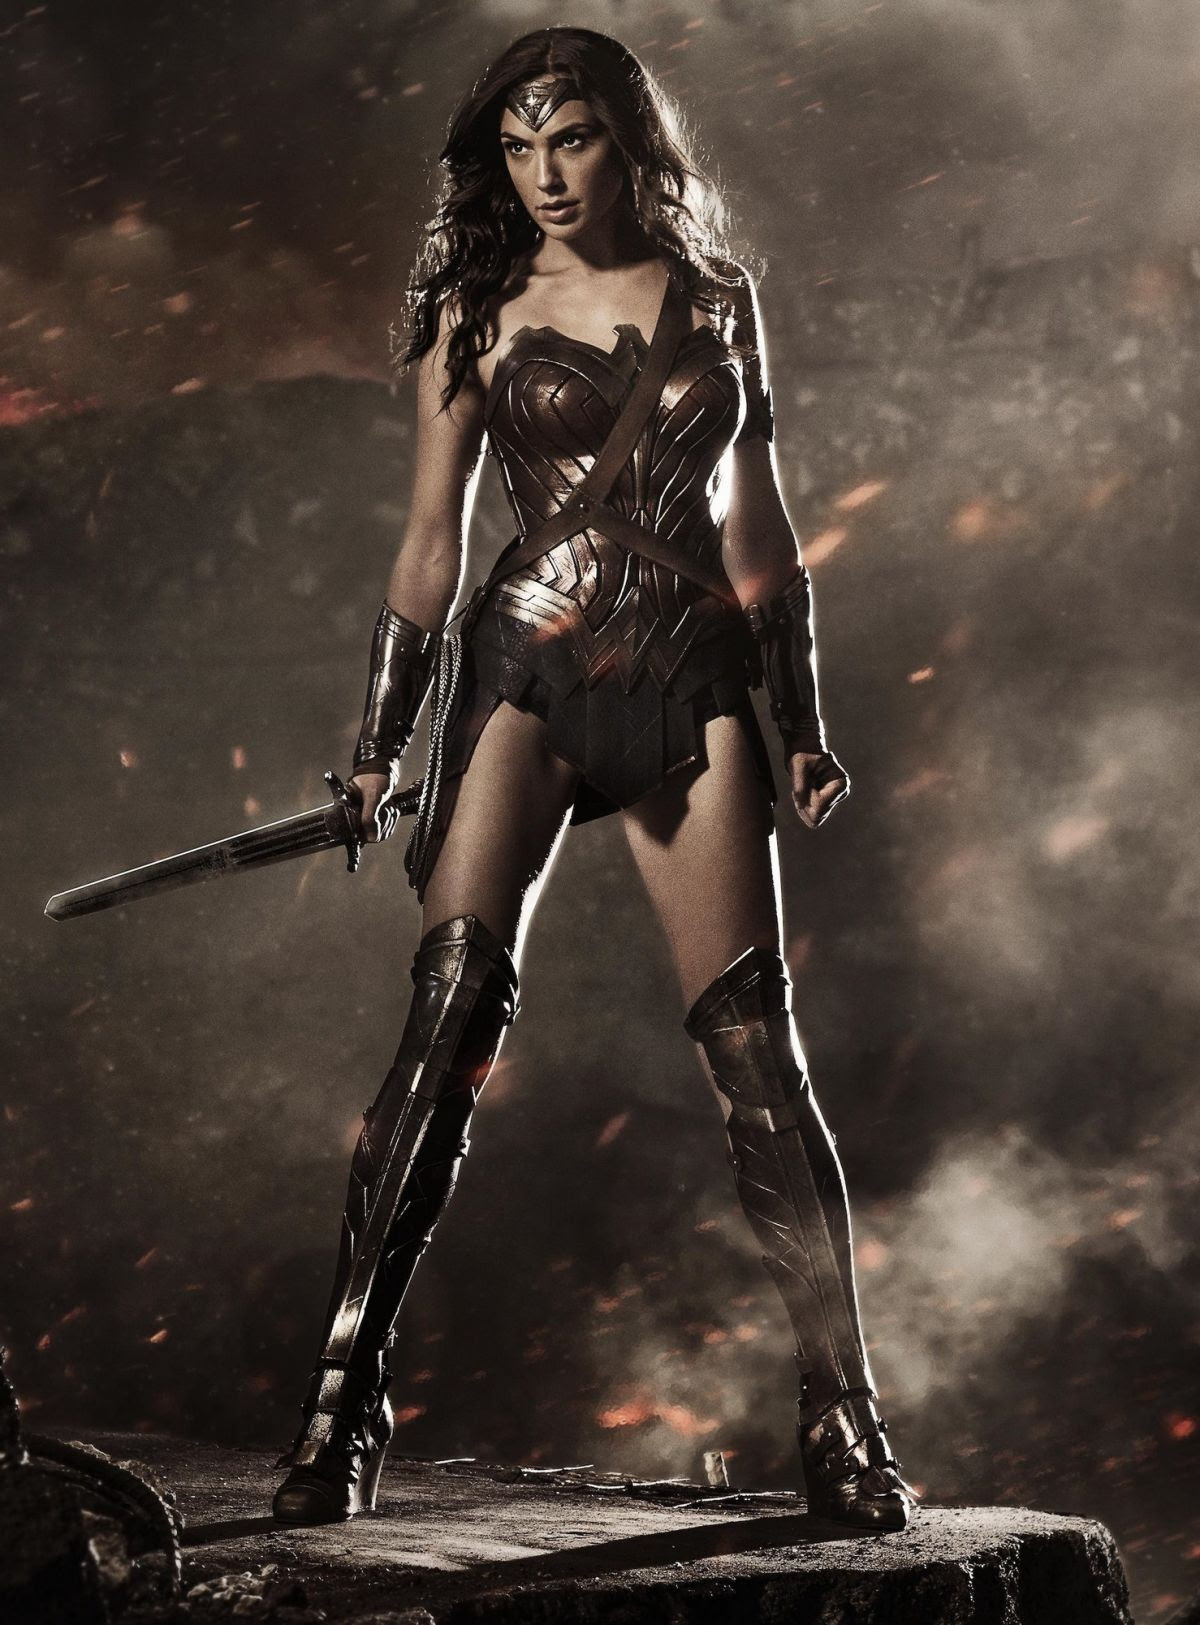 GAL GADOT - Superman vs Batman - Wonder Woman - Justice League - Posters and Promo Pictures